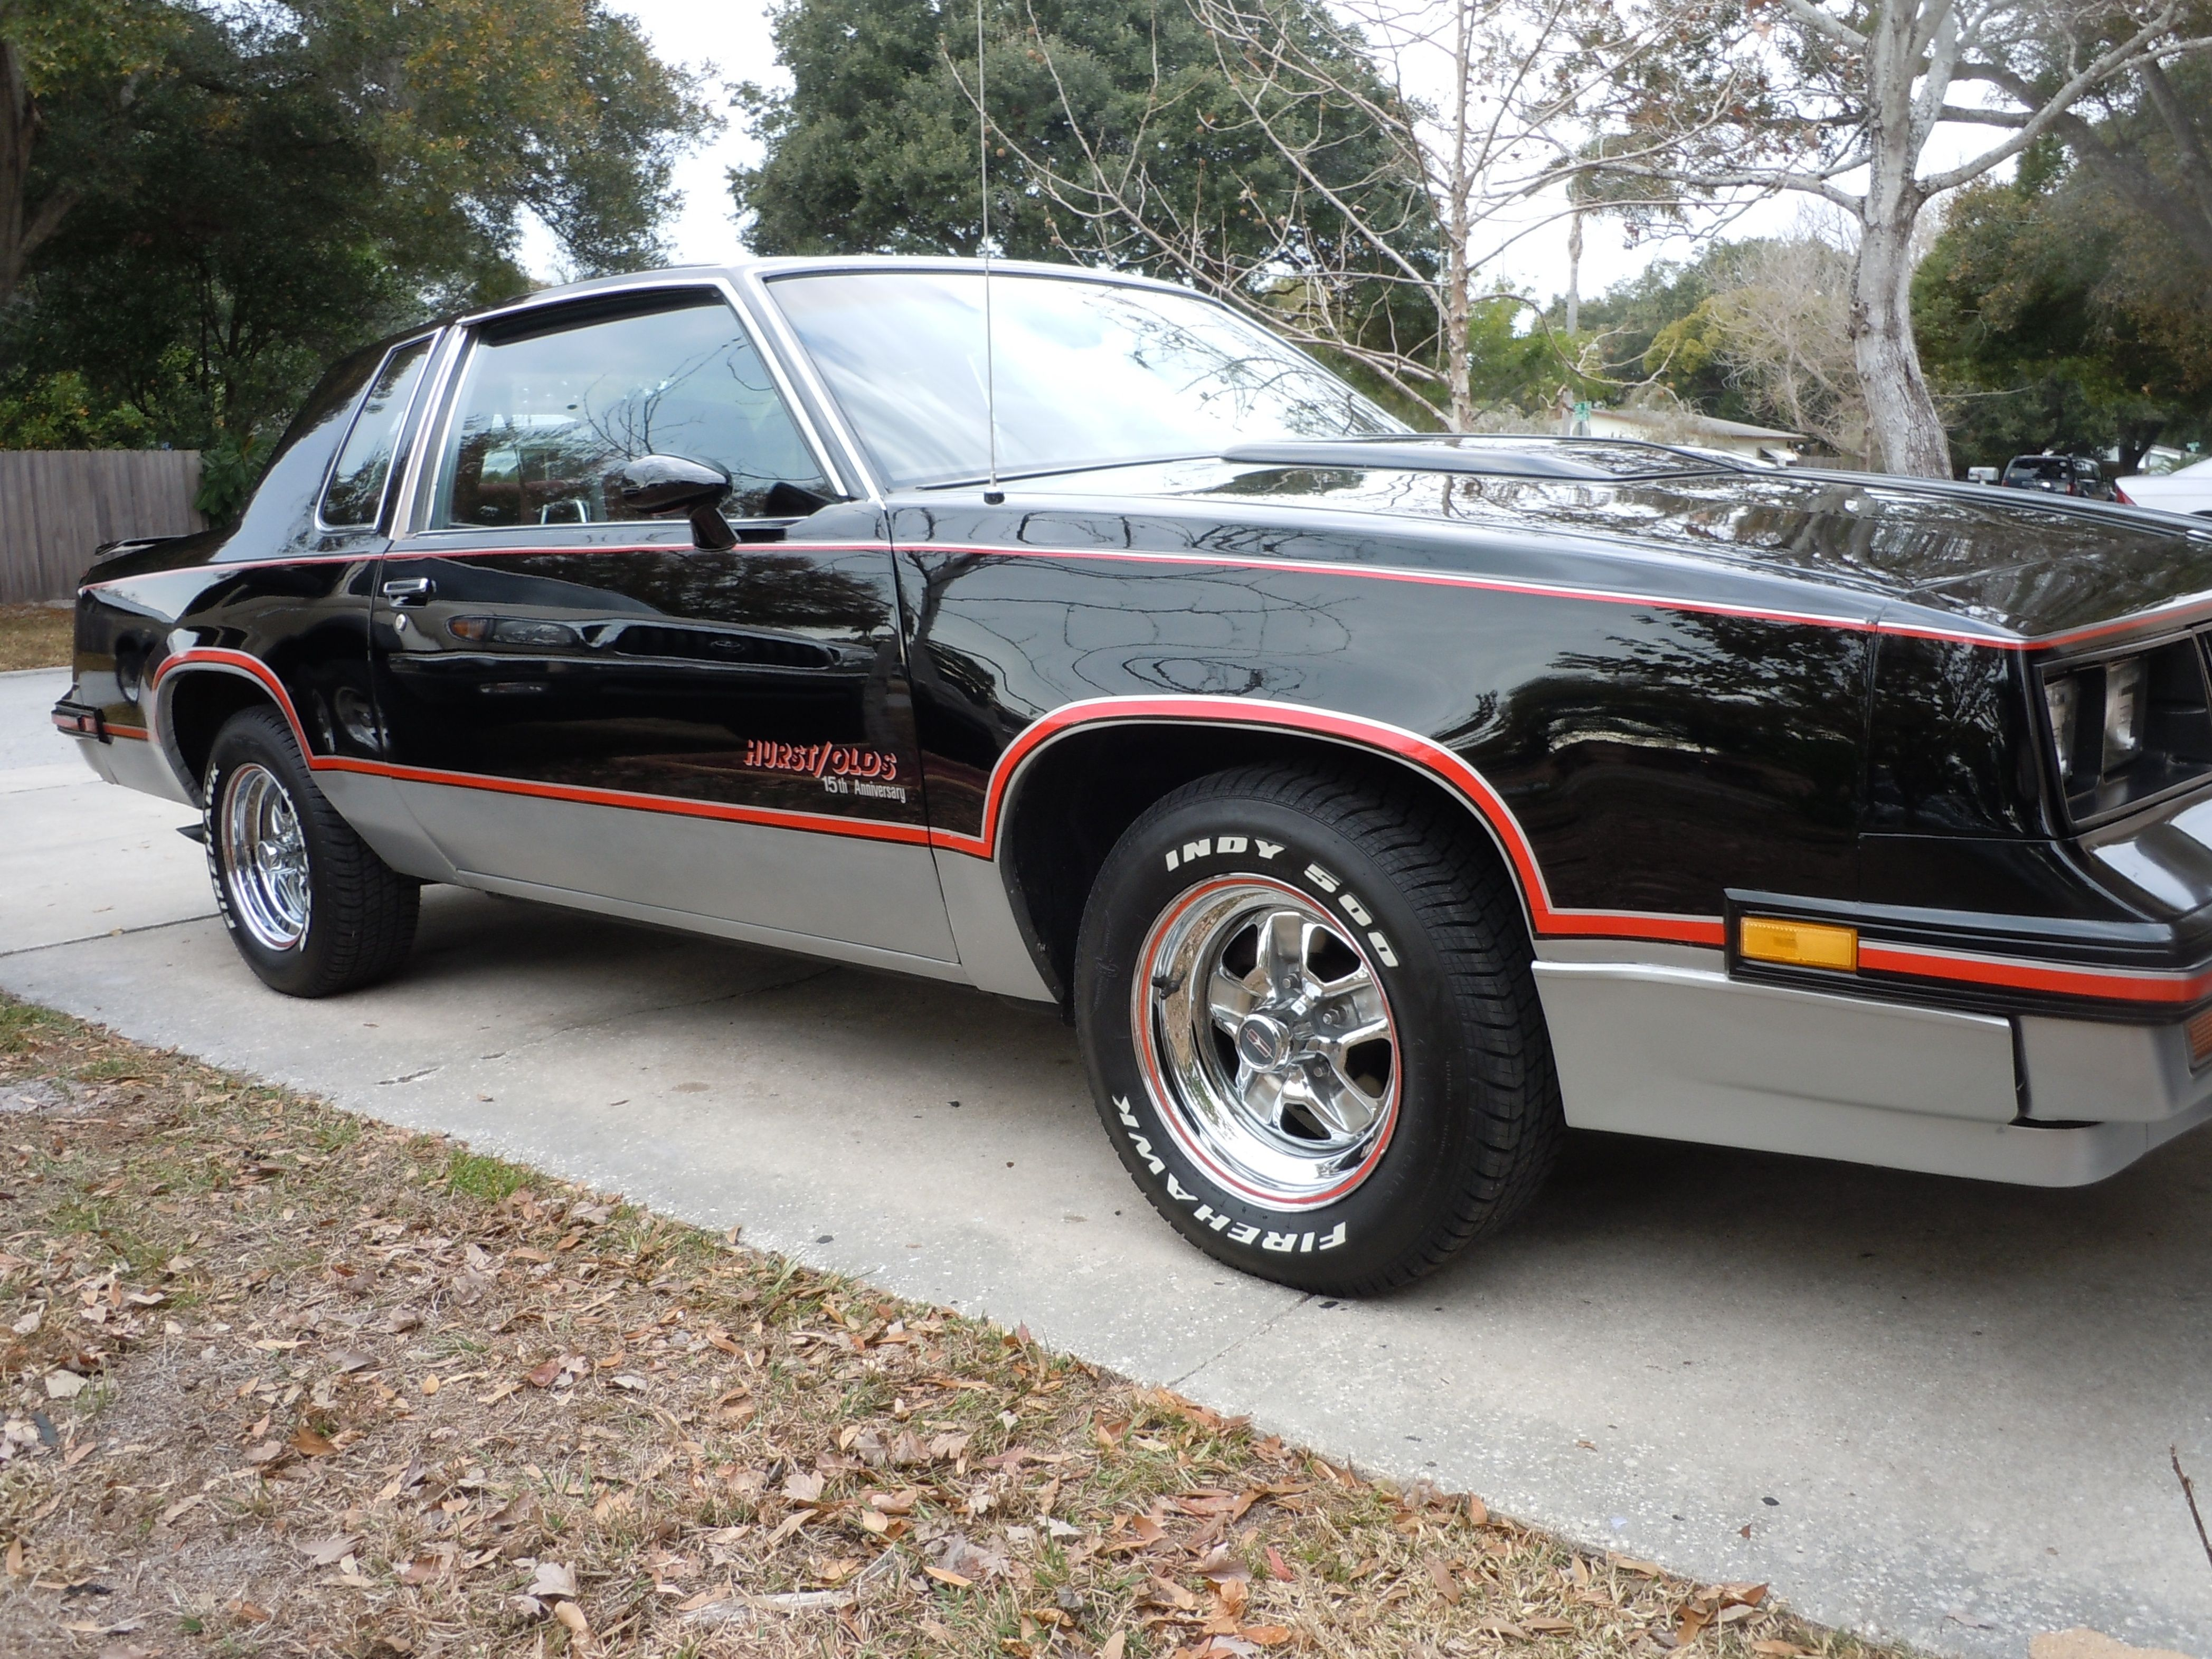 1984 oldsmobile cutlass supreme car for sale 69 chevy pinterest oldsmobile cutlass supreme oldsmobile cutlass and cars